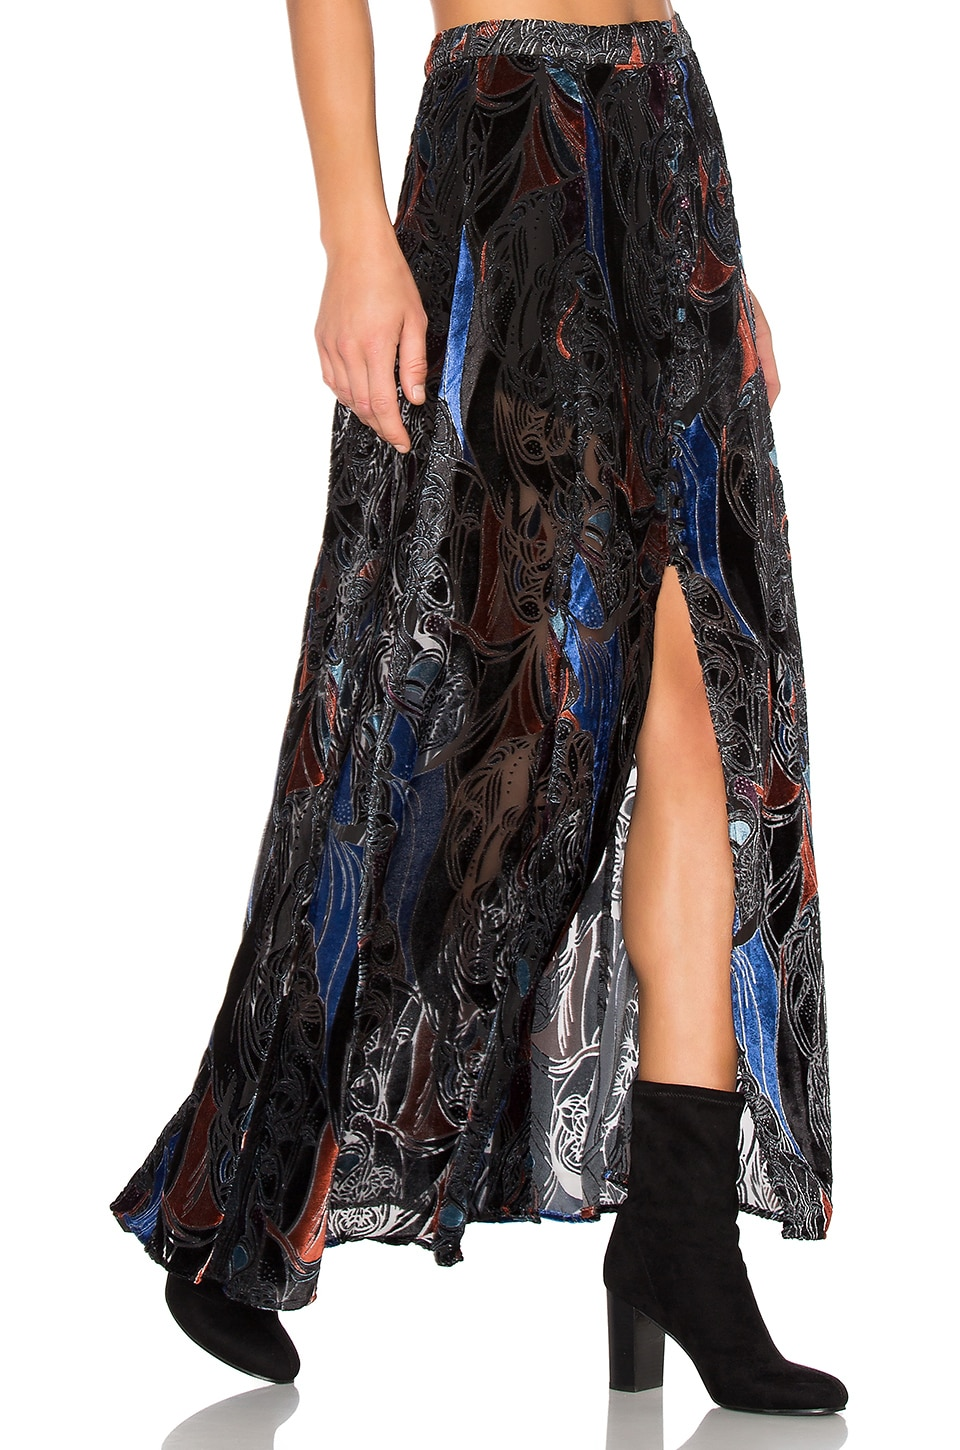 Free People Velvet Burnout Love So Right Skirt in Black Combo